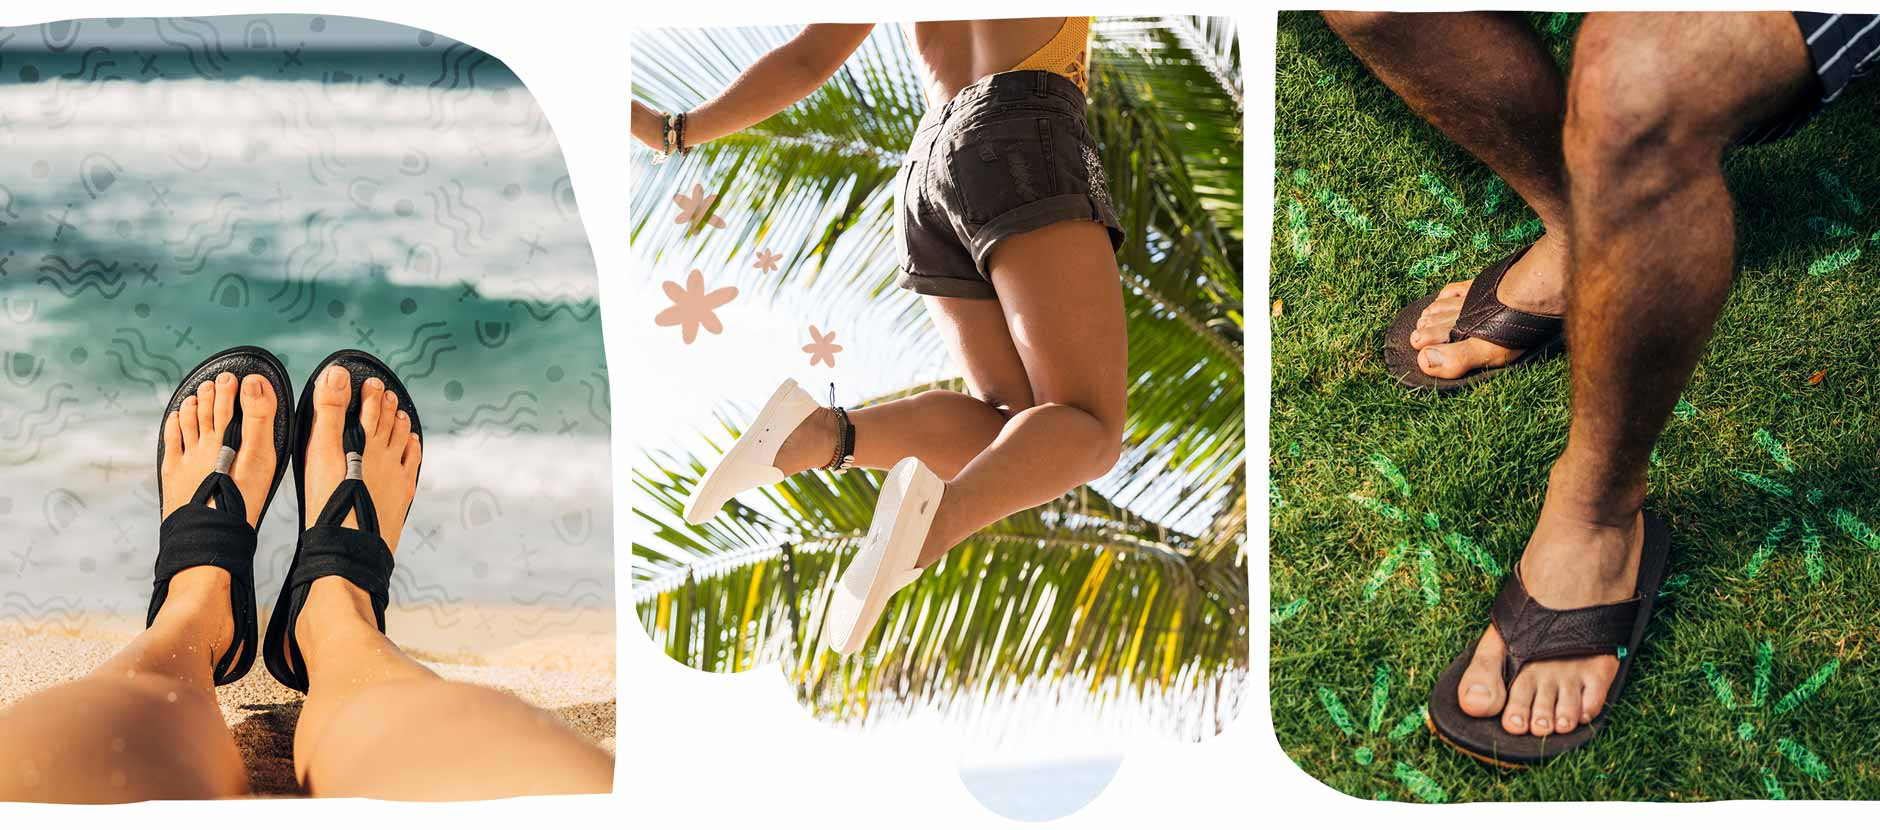 A collage of legs on vacation wearing Sanuk flip flops